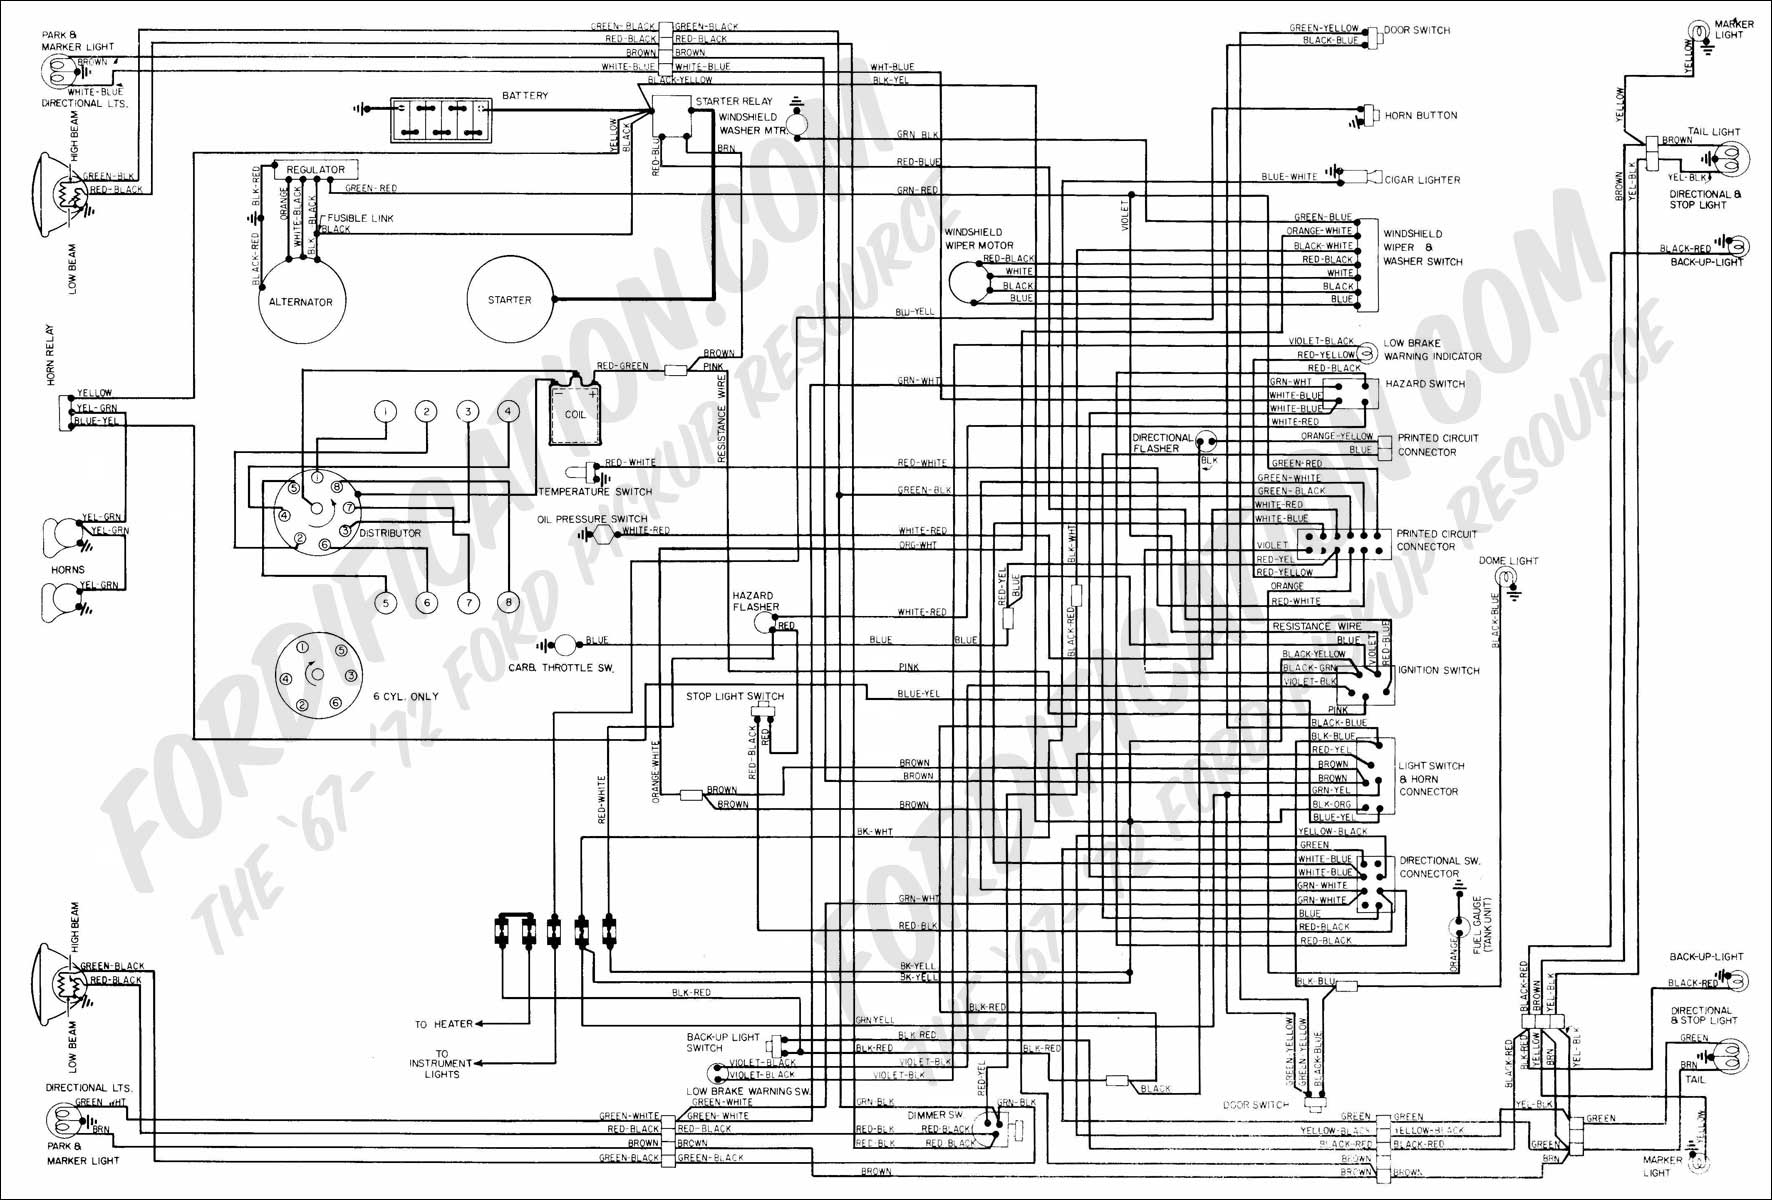 1987 chevy camaro alternator wiring diagram with Schematics H on 1967 Ford F250 Wiring Diagram likewise respond further 87 Camaro Tpi Wiring Diagram furthermore Occupants 1976 4door topic5330 page13 likewise 96 Lt1 Wiring Diagram.